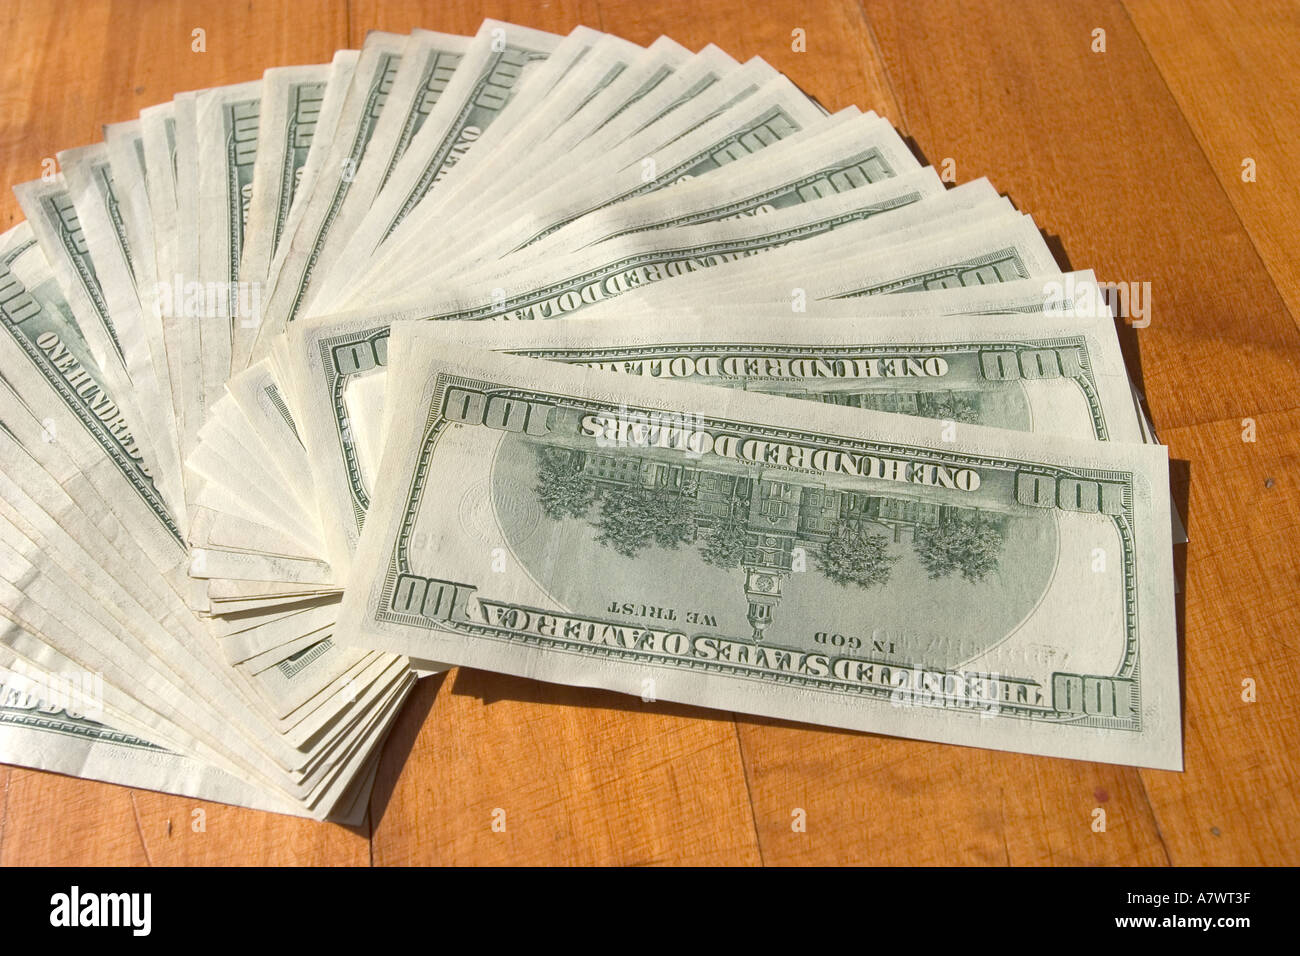 Stock Photo   Aligned 5000 Dollars In Cash In One Hundred American Currency  Dollars